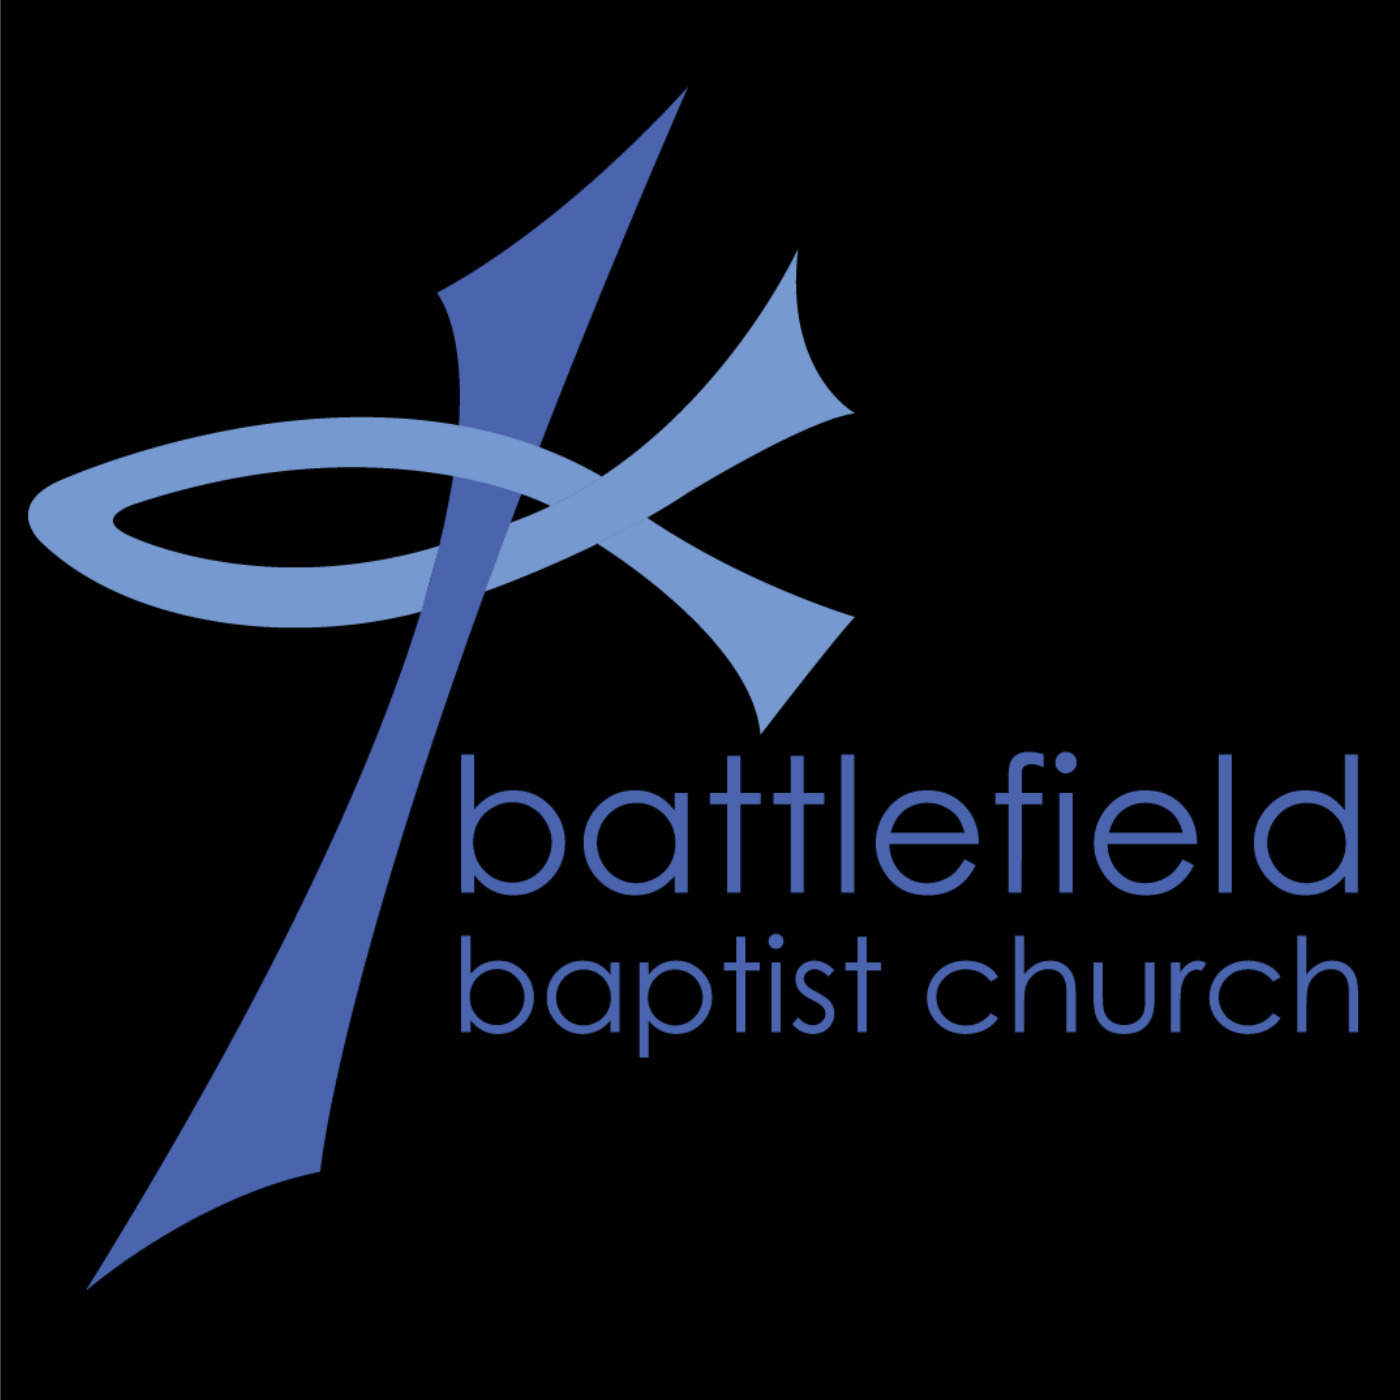 Battlefield Baptist Church - Sermons